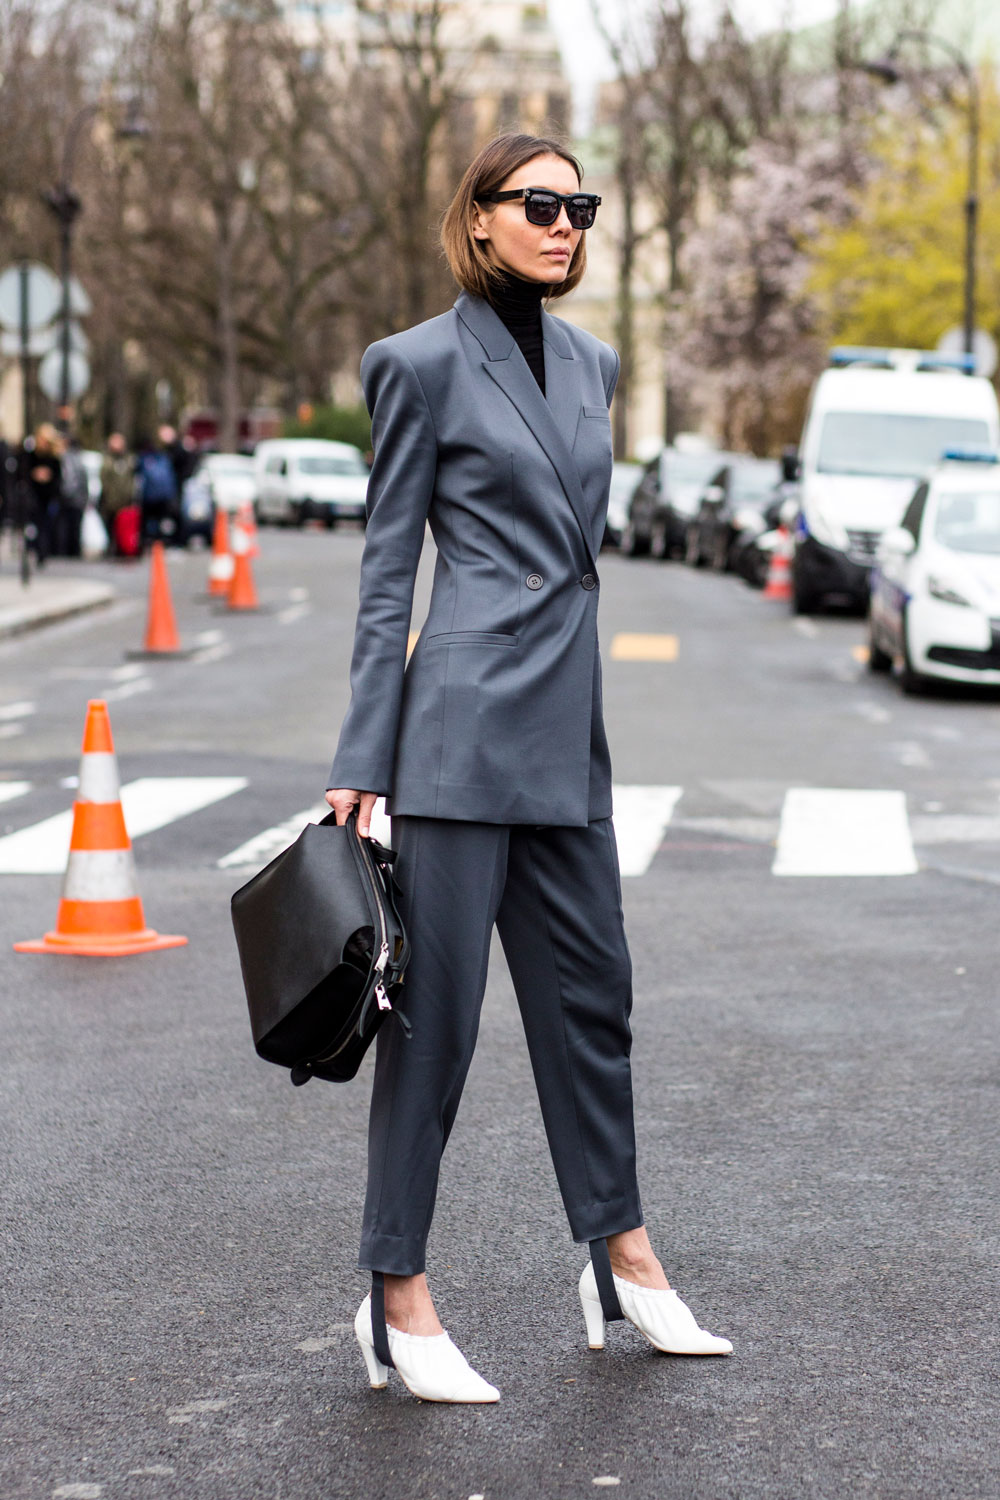 The-Gloss-Magazine-Look-The-Business-Suit-1